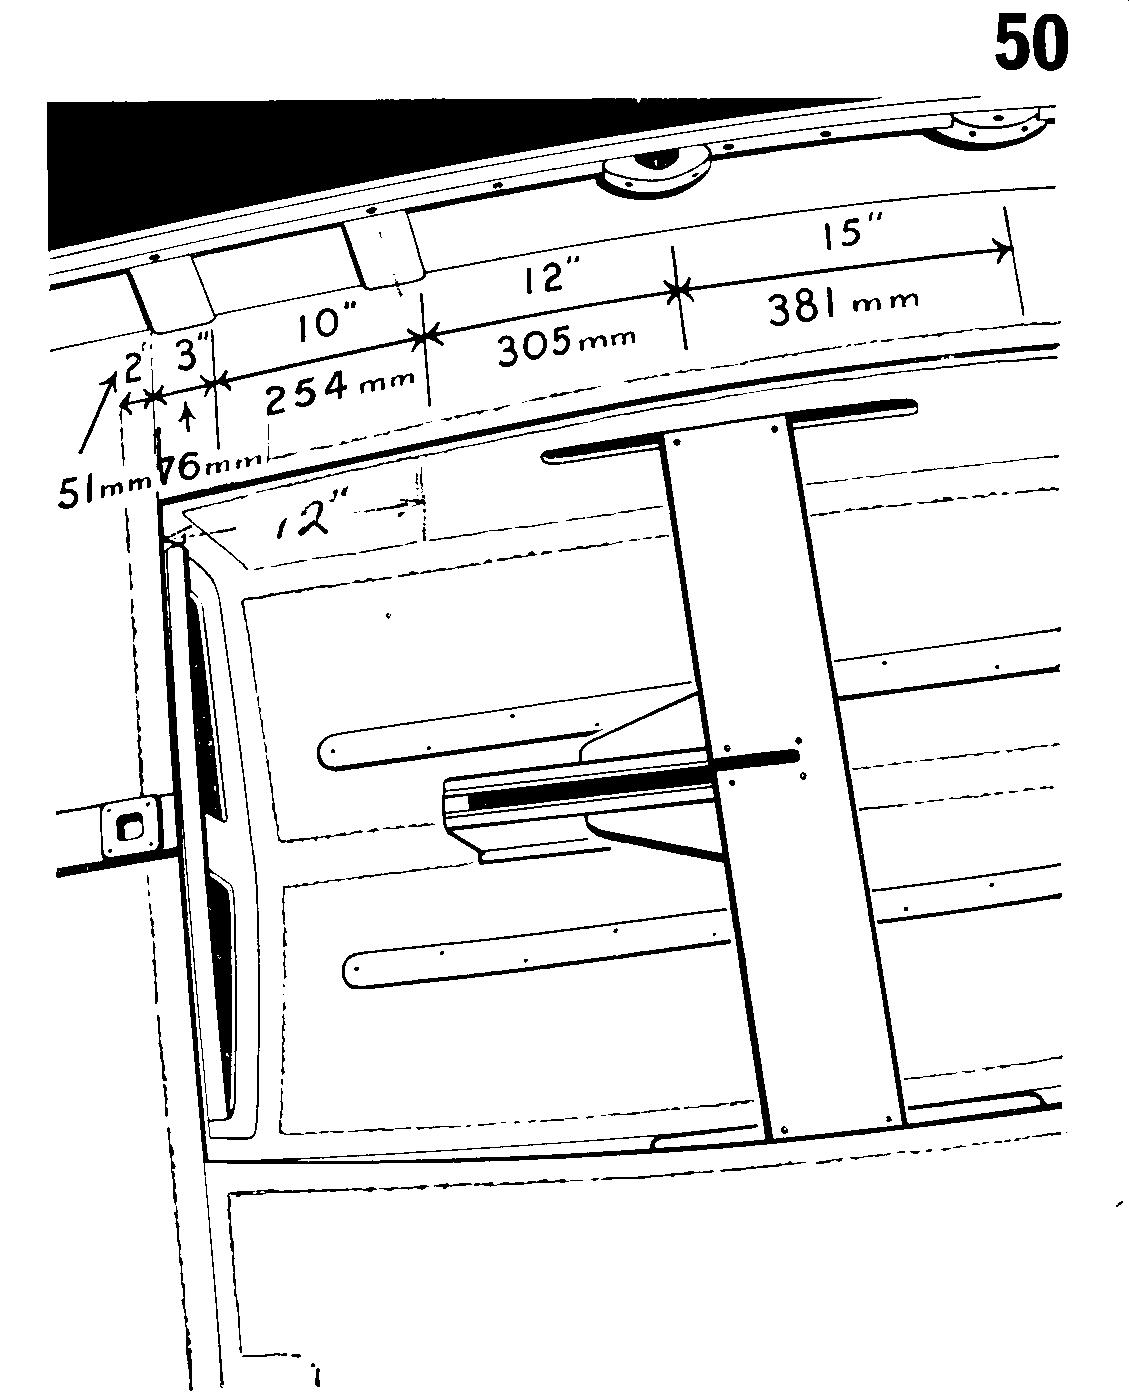 hight resolution of in the early days the standard wooden mirror dinghy was equipped with wooden jib fairleads fixed to the inner gunwale